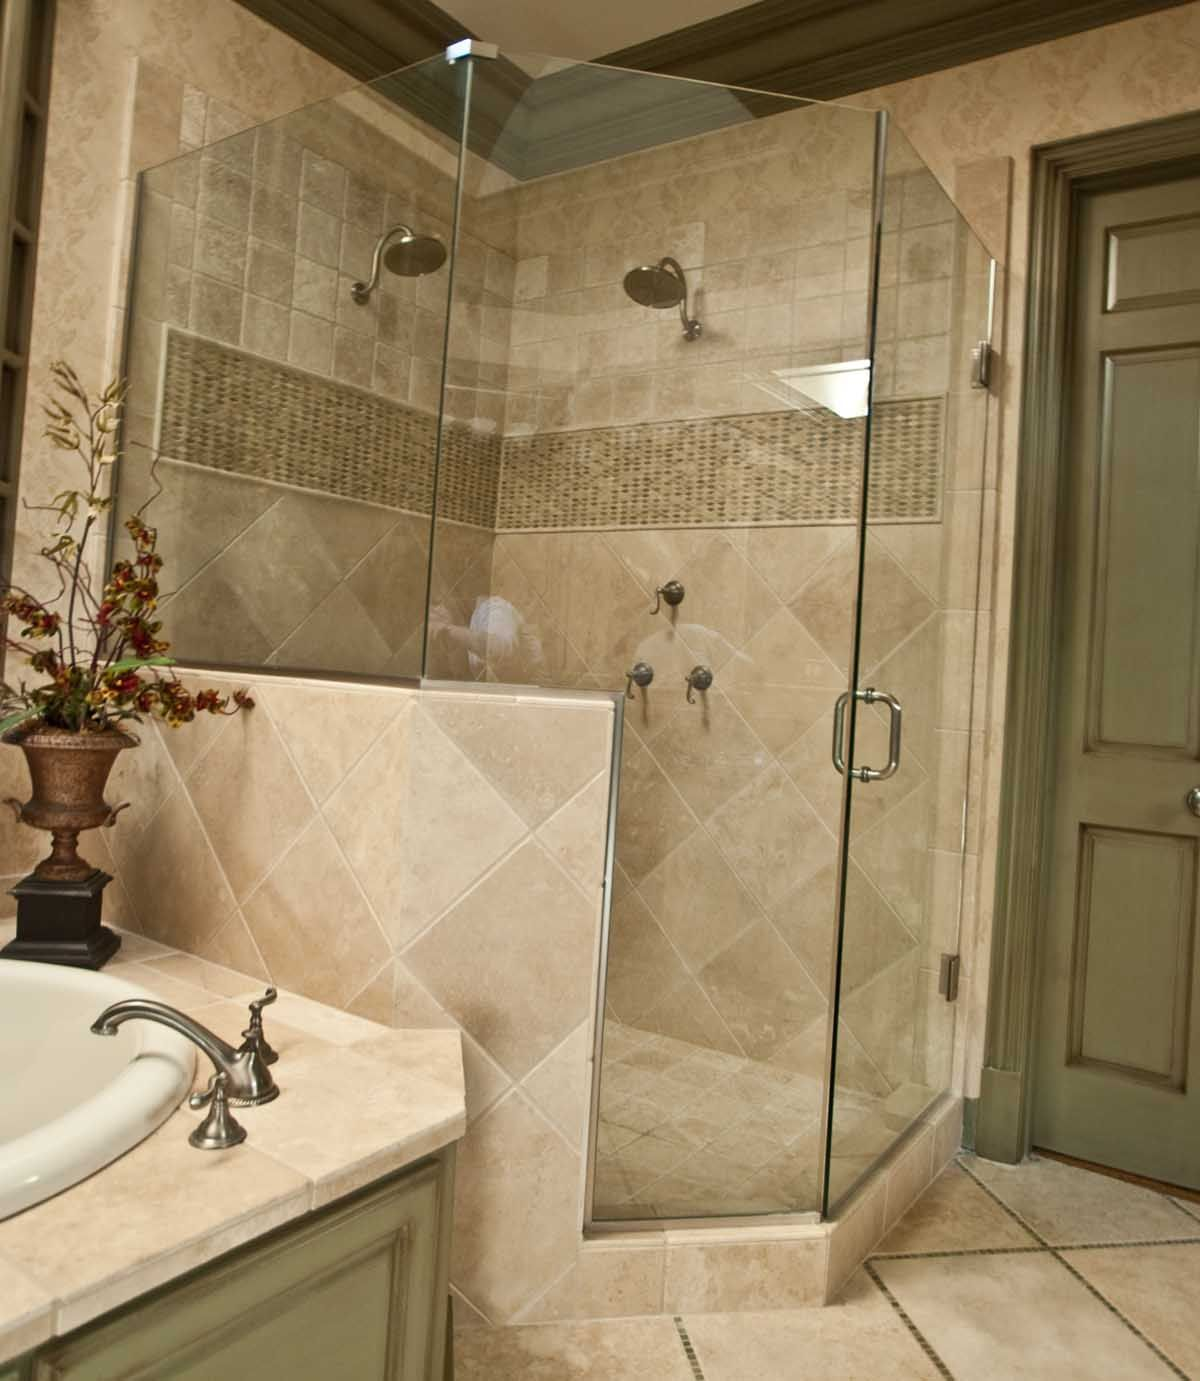 Pictures Of Remodeled Bathrooms bathroom remodeling ideas | bathroom remodeling ideas for small